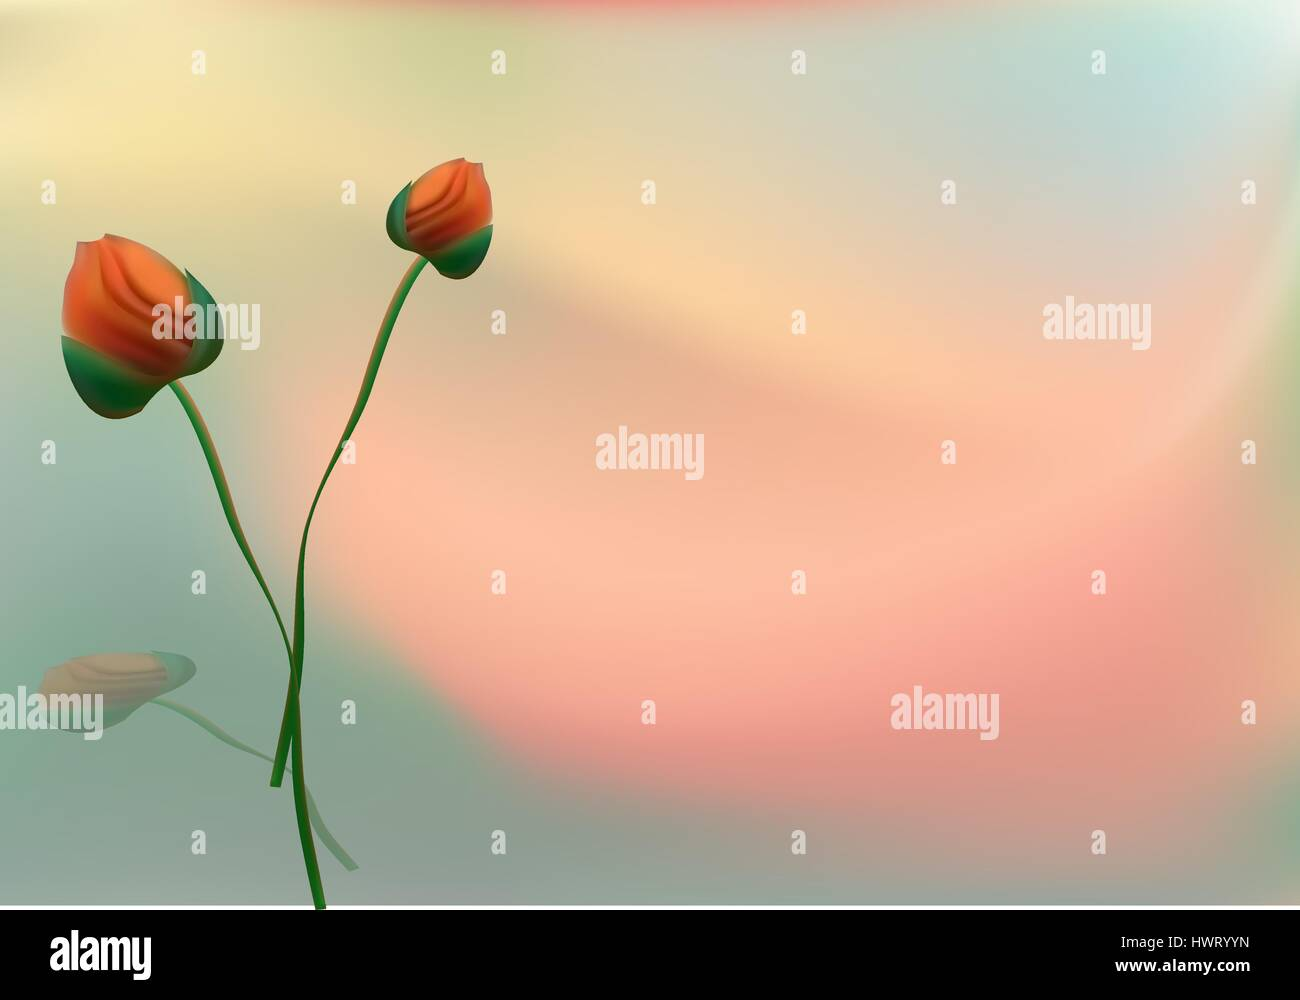 The flowers of red poppy closeup on grey background. - Stock Vector